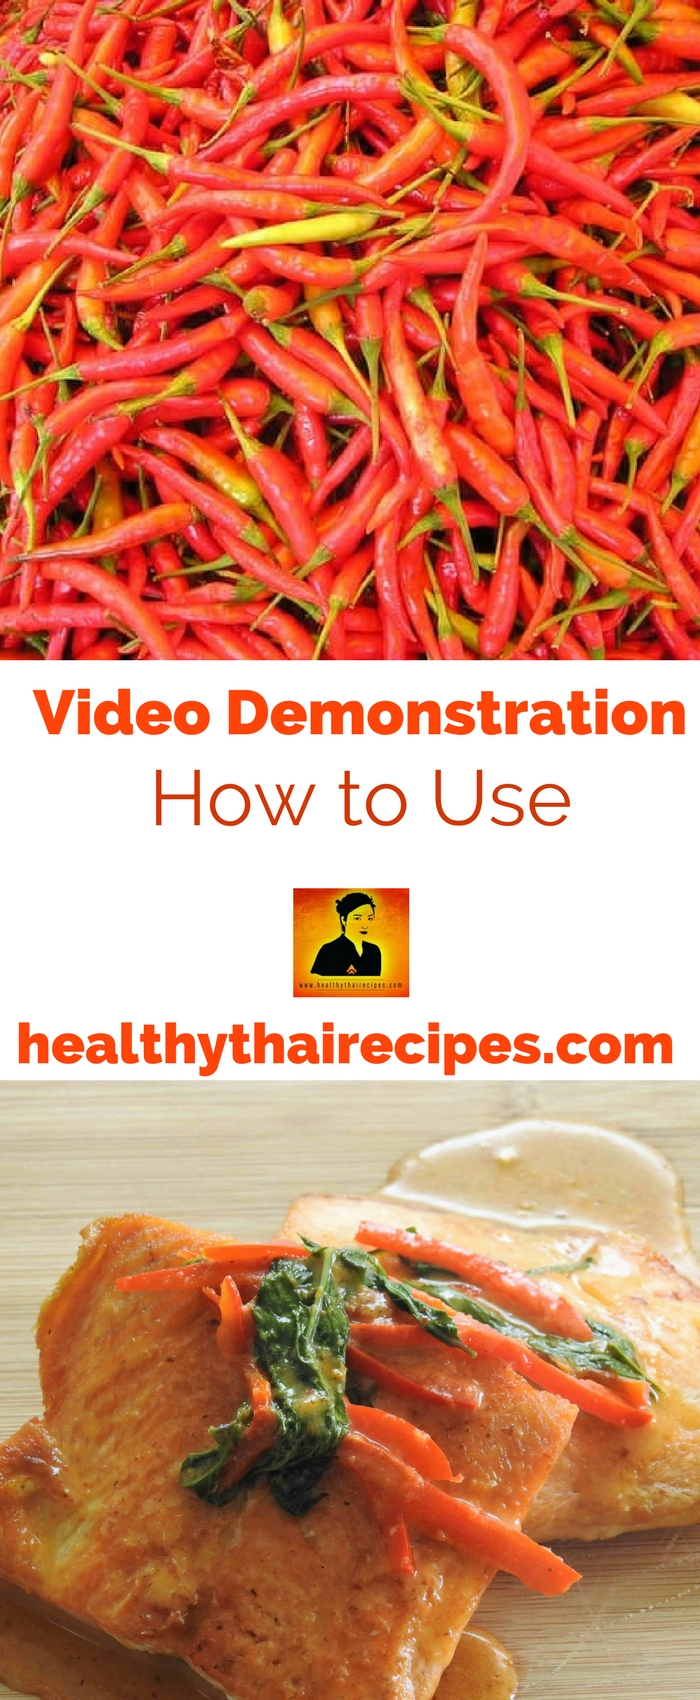 Demonstration Video for HealthyThaiRecipes.com Pinterest Video.